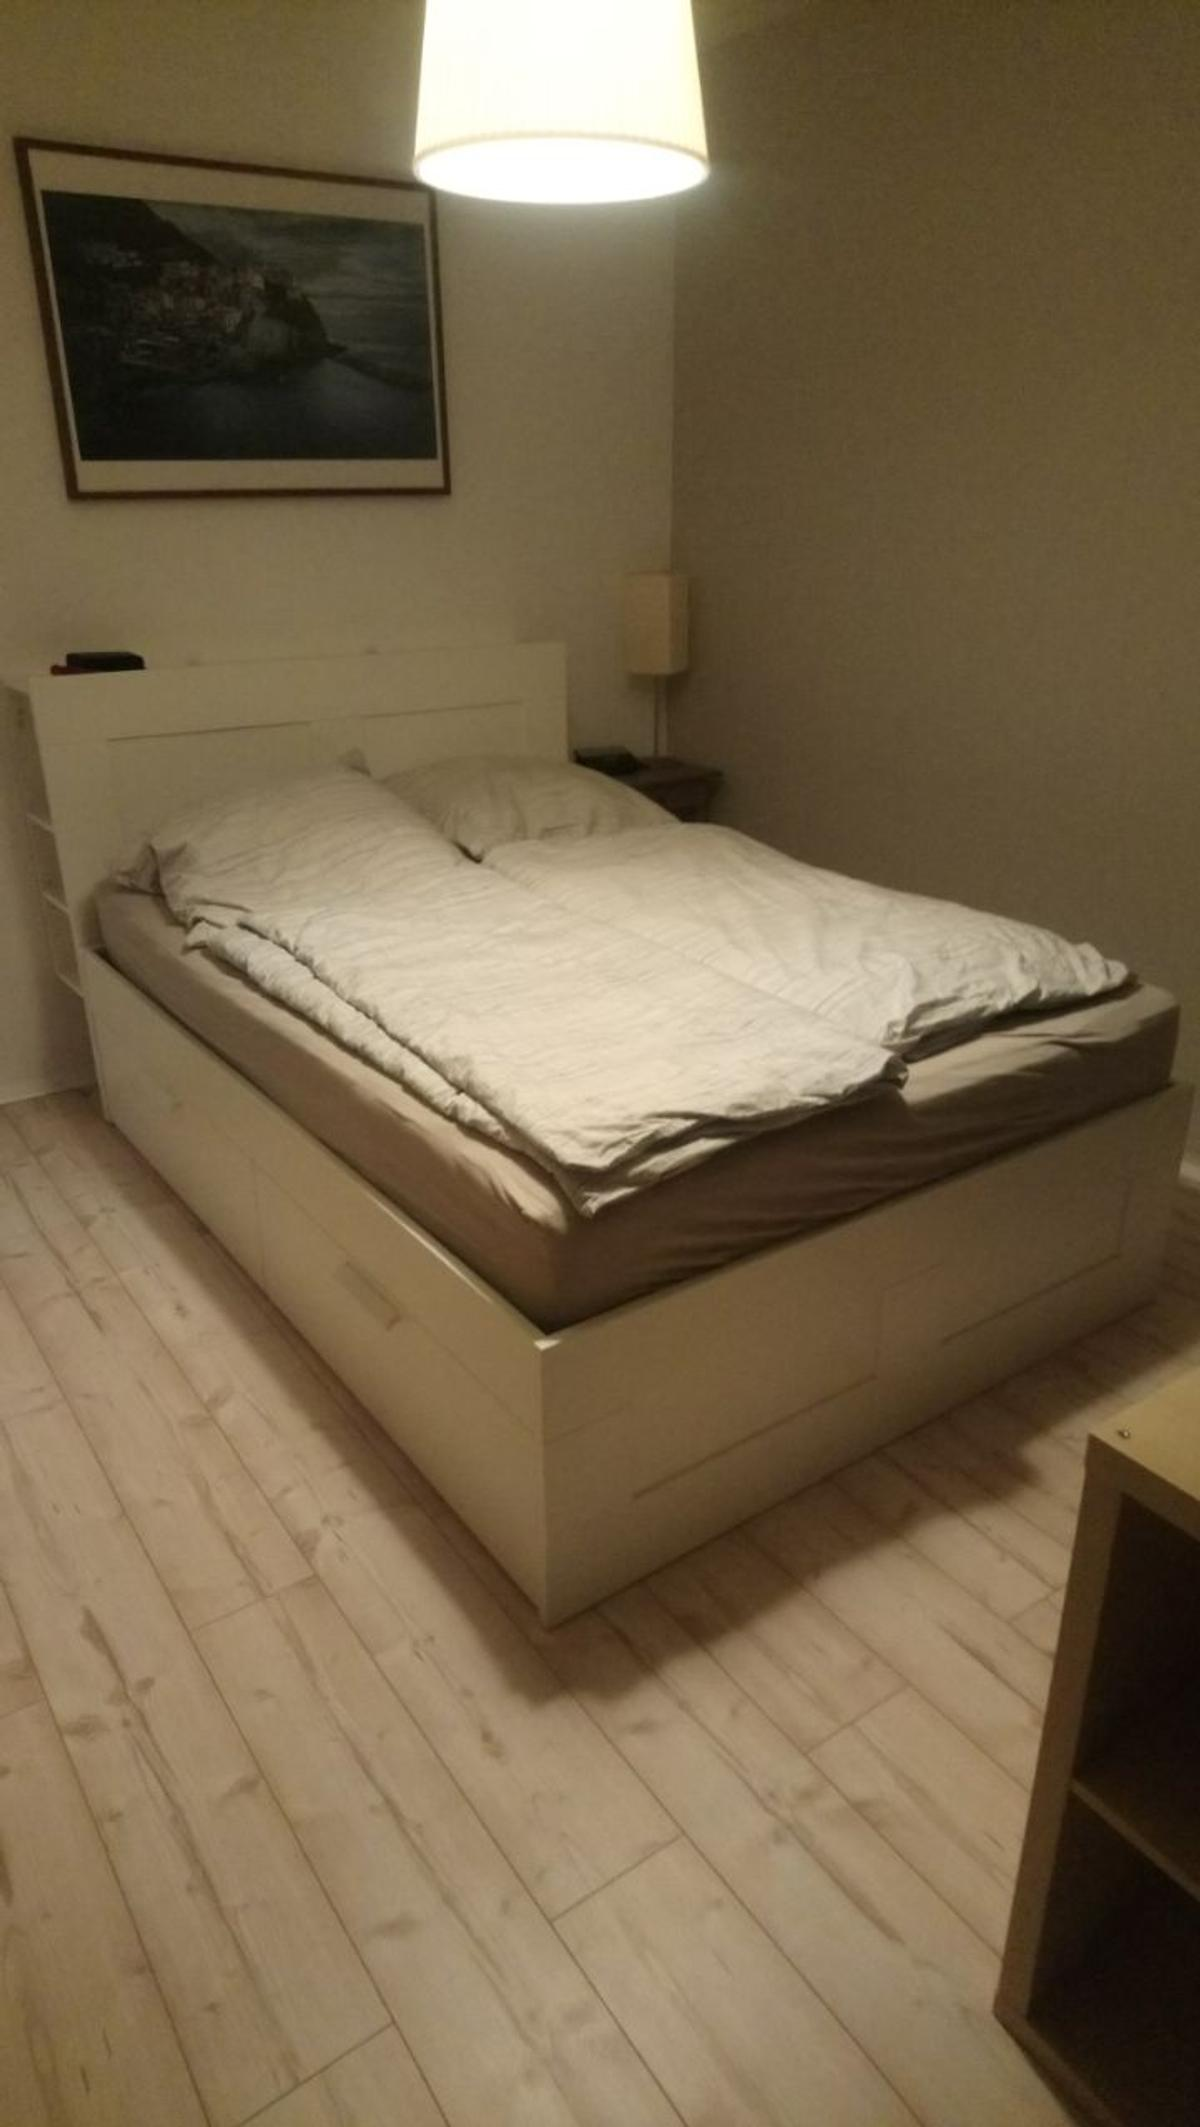 Ikea Brimnes Weiss 140x200 In 10319 Berlin For 60 00 For Sale Shpock